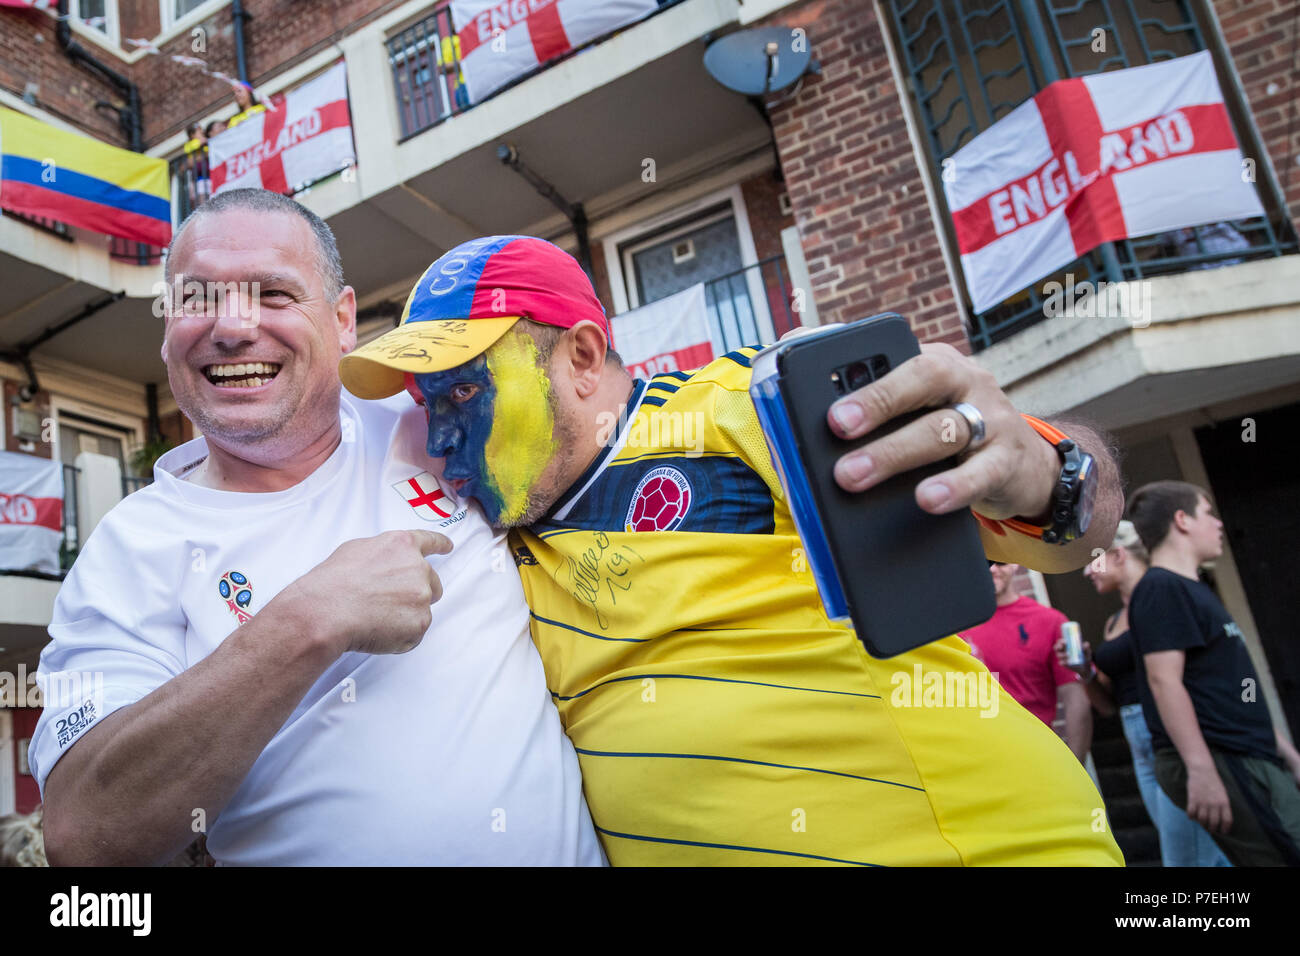 Members of London's Colombian community watch the Colombian national football team play against England during FIFA 2018 World Cup finals. - Stock Image